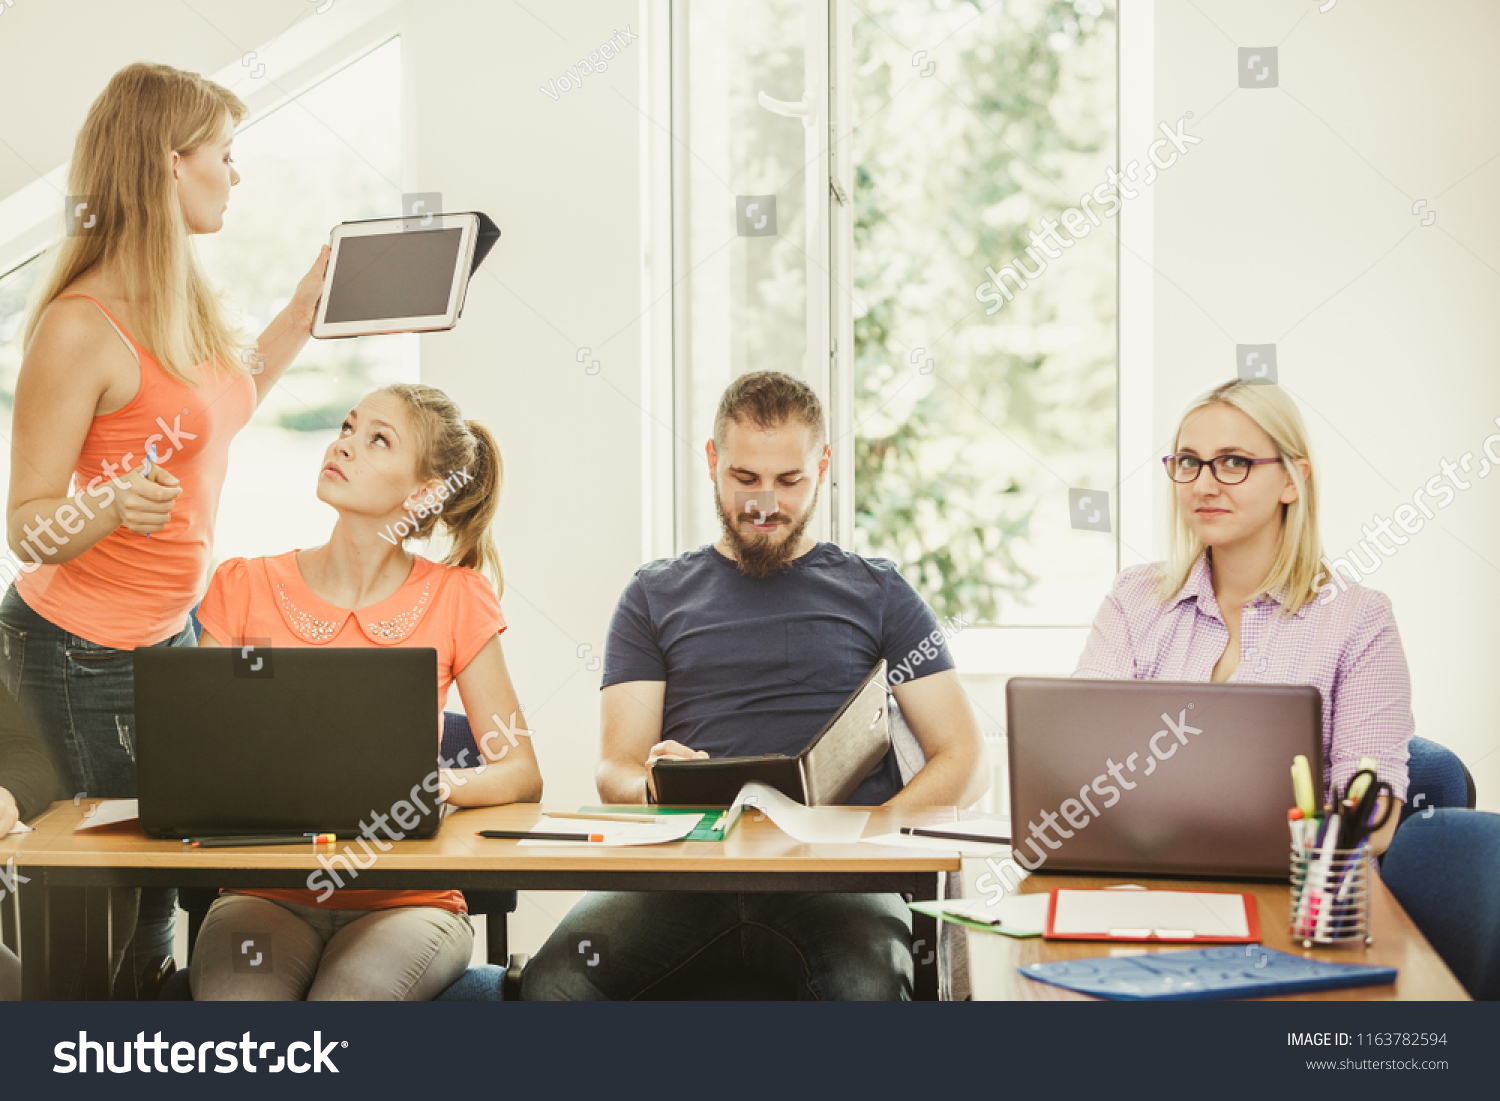 Teaching adult using technology the